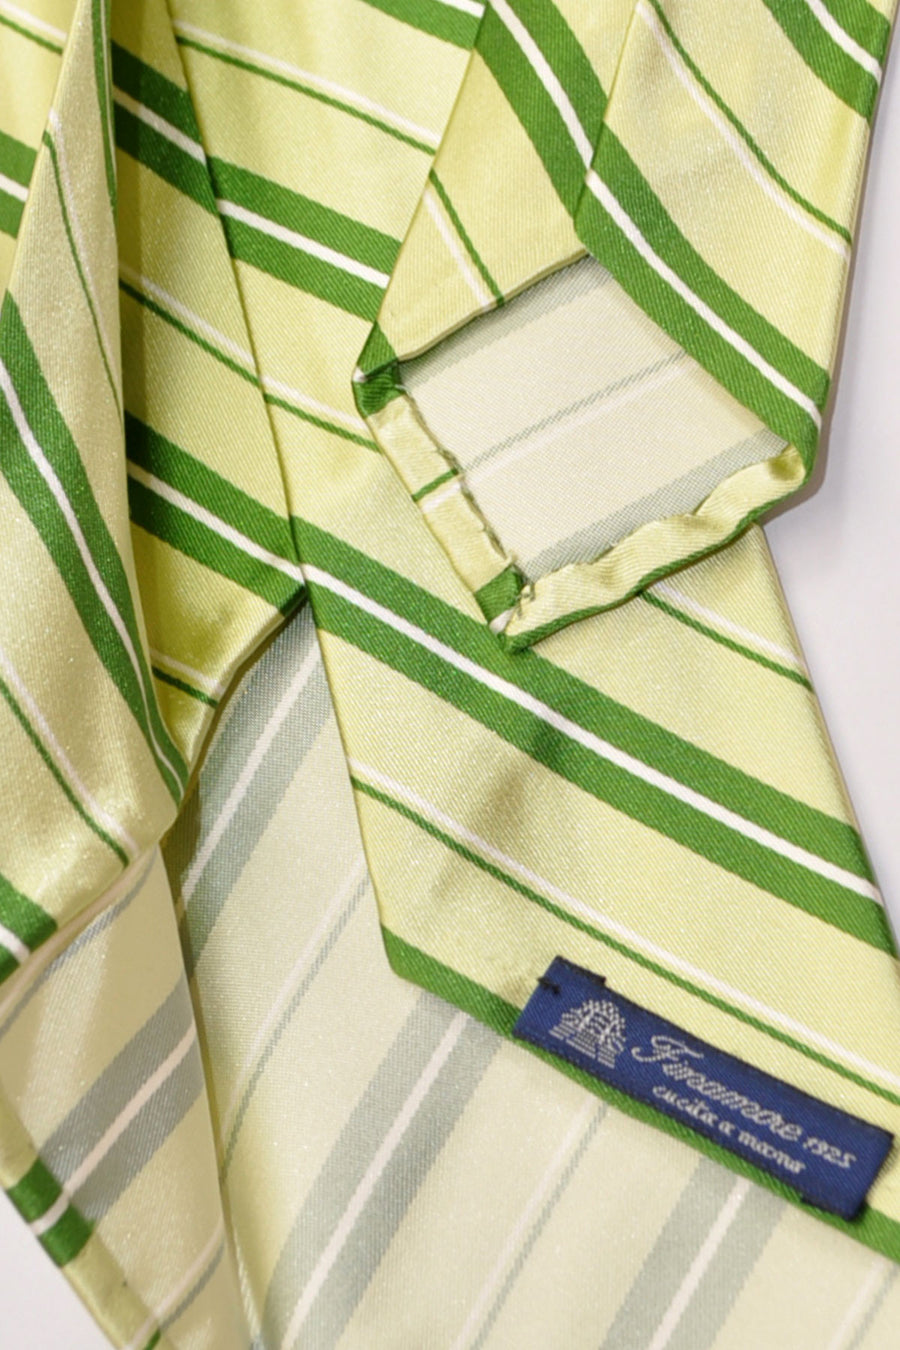 Finamore Unlined Sevenfold Tie Green Stripes